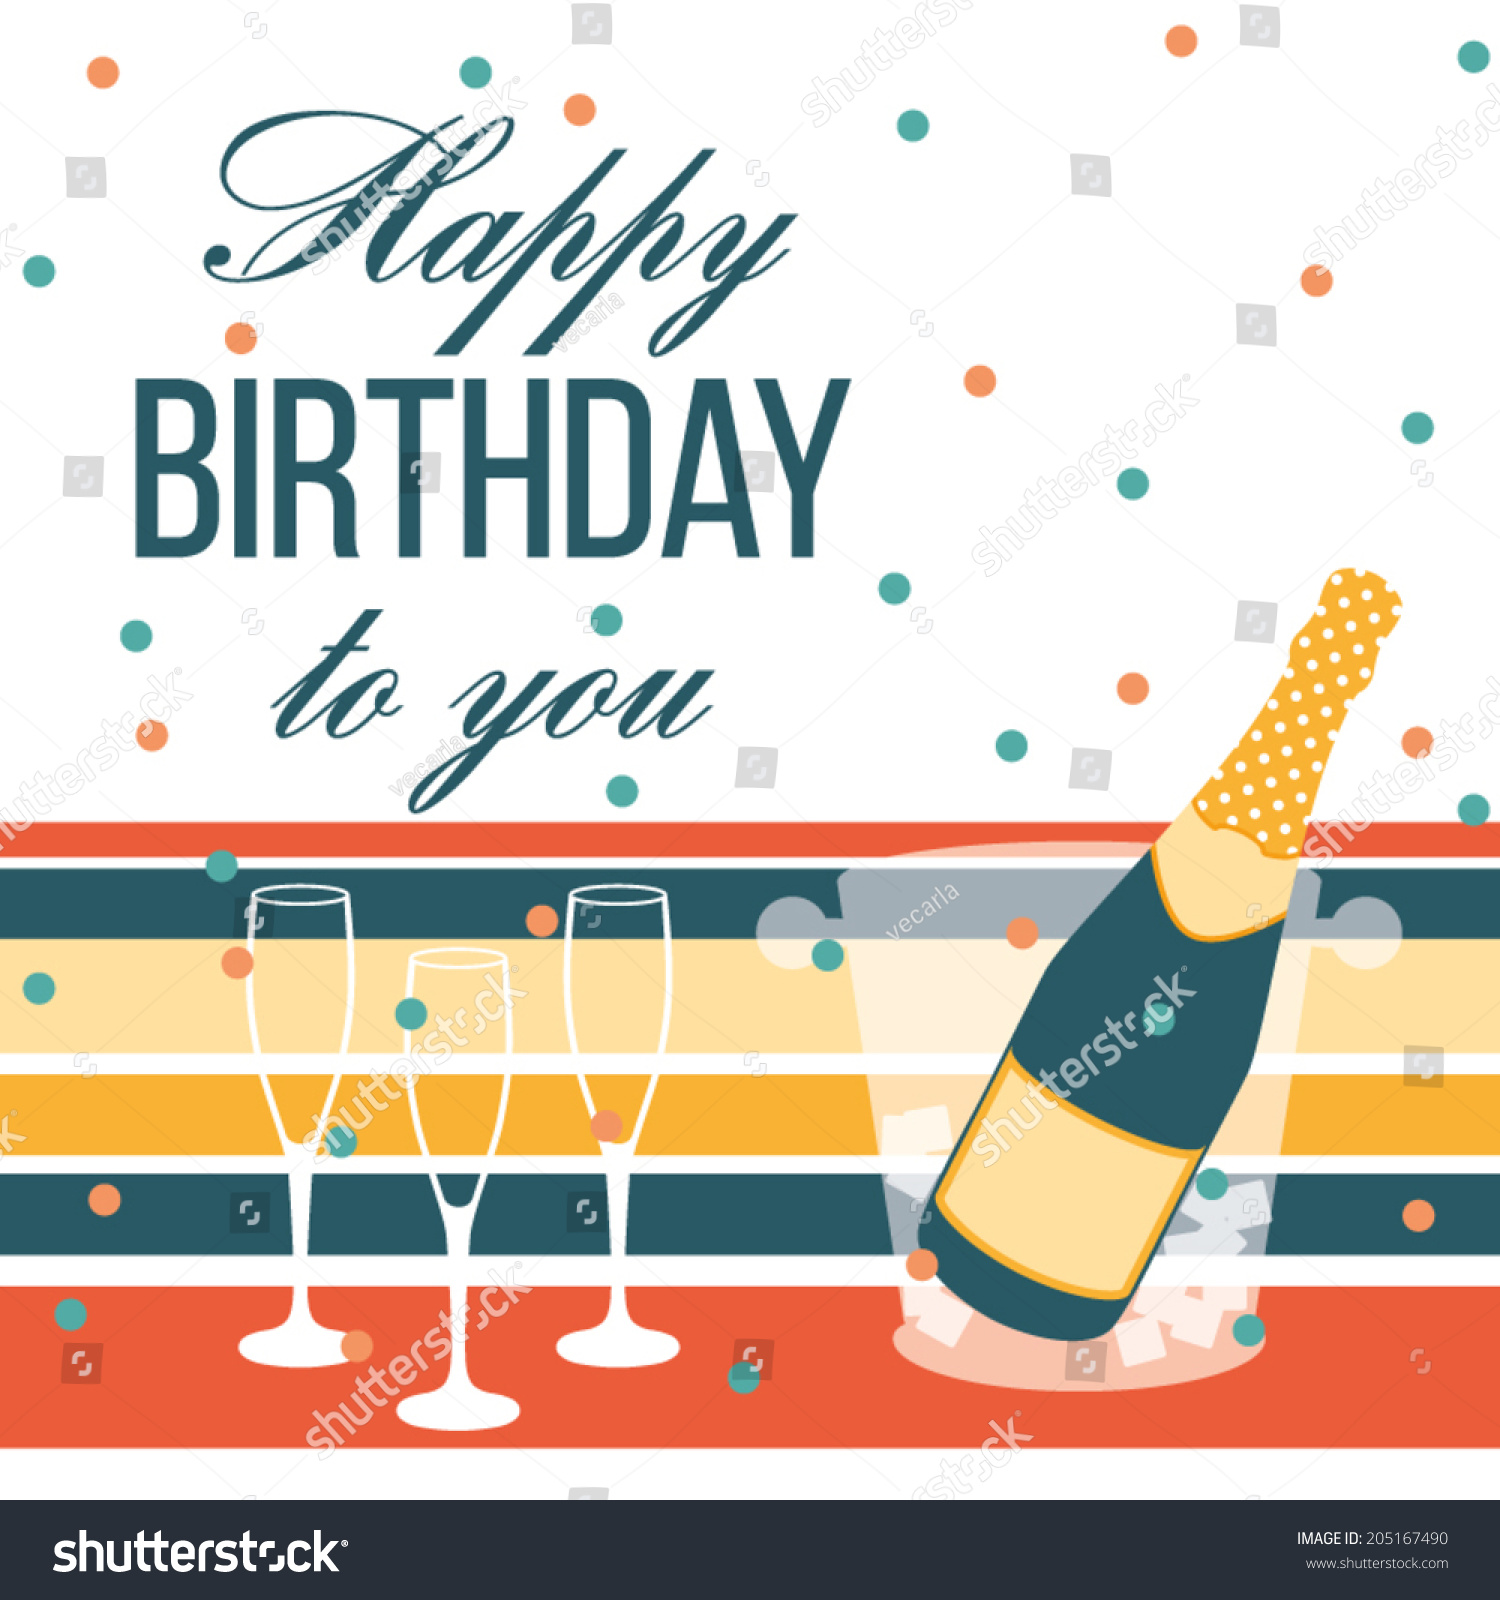 Happy Birthday Card Champagne Bottle Glasses Stock Vector